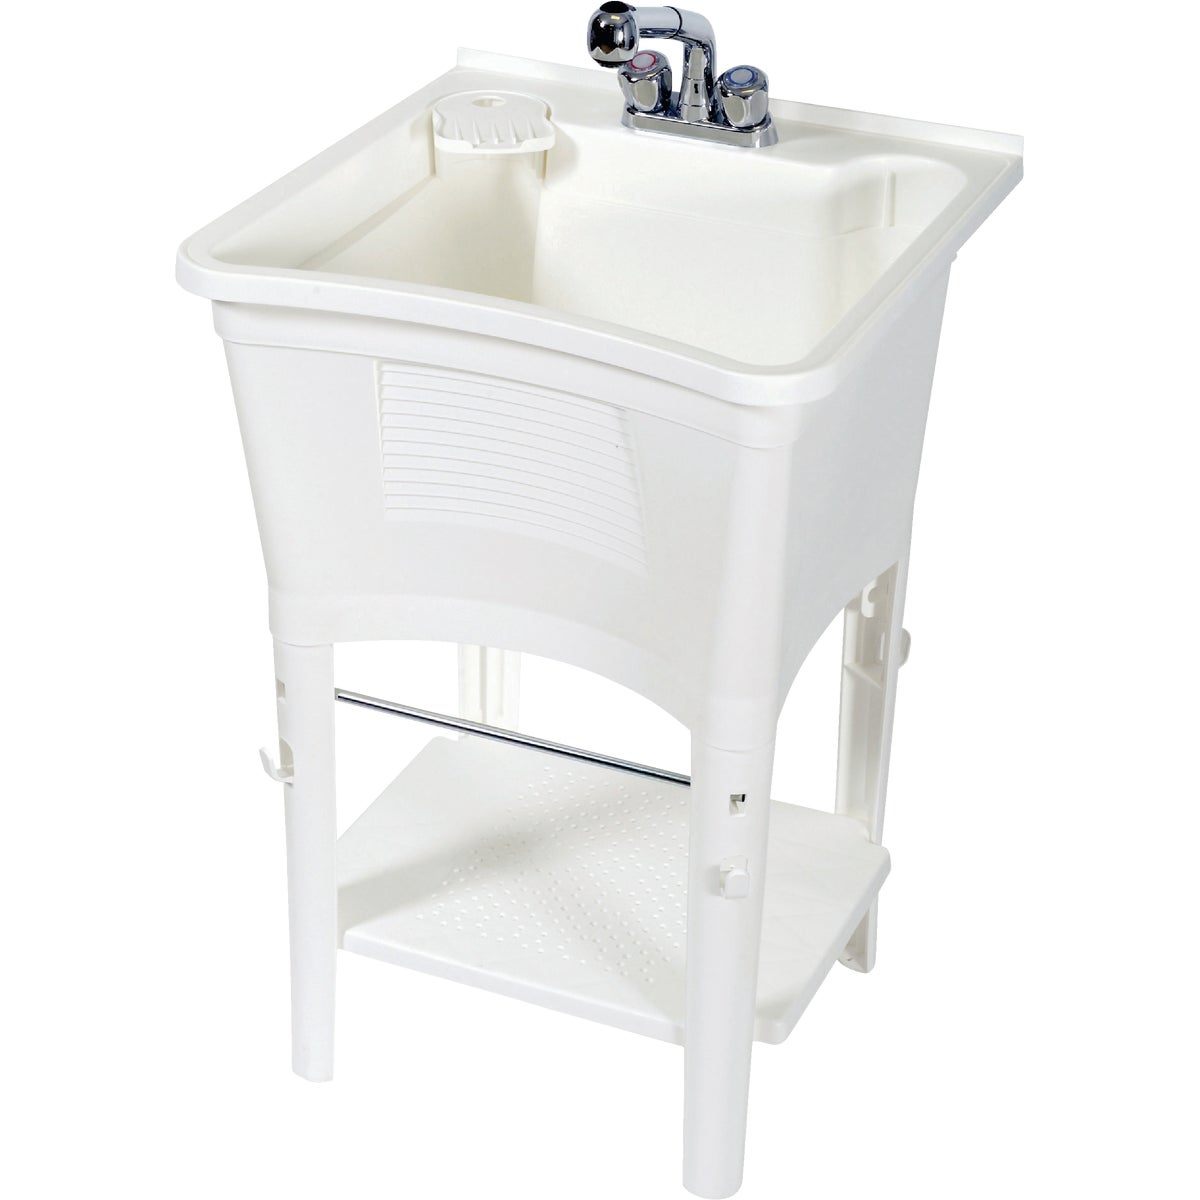 DELUXE ERGO LAUNDRY TUB - LT2006W by Zenith Prod Corp